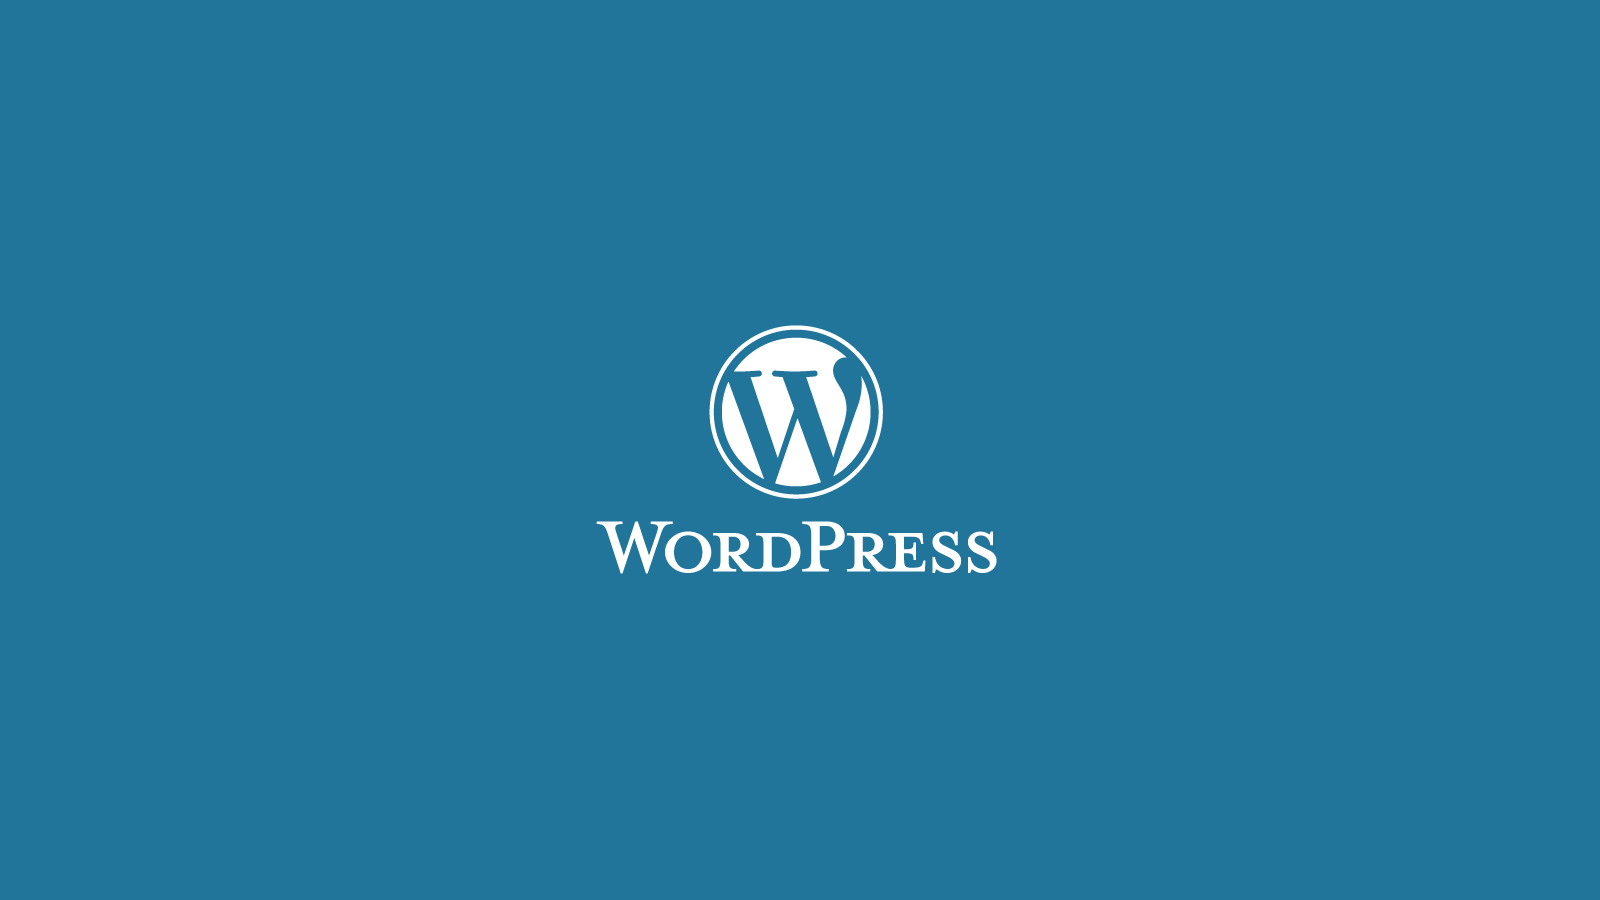 Benefits of a WordPress Website: Why It's Our Preferred CMS